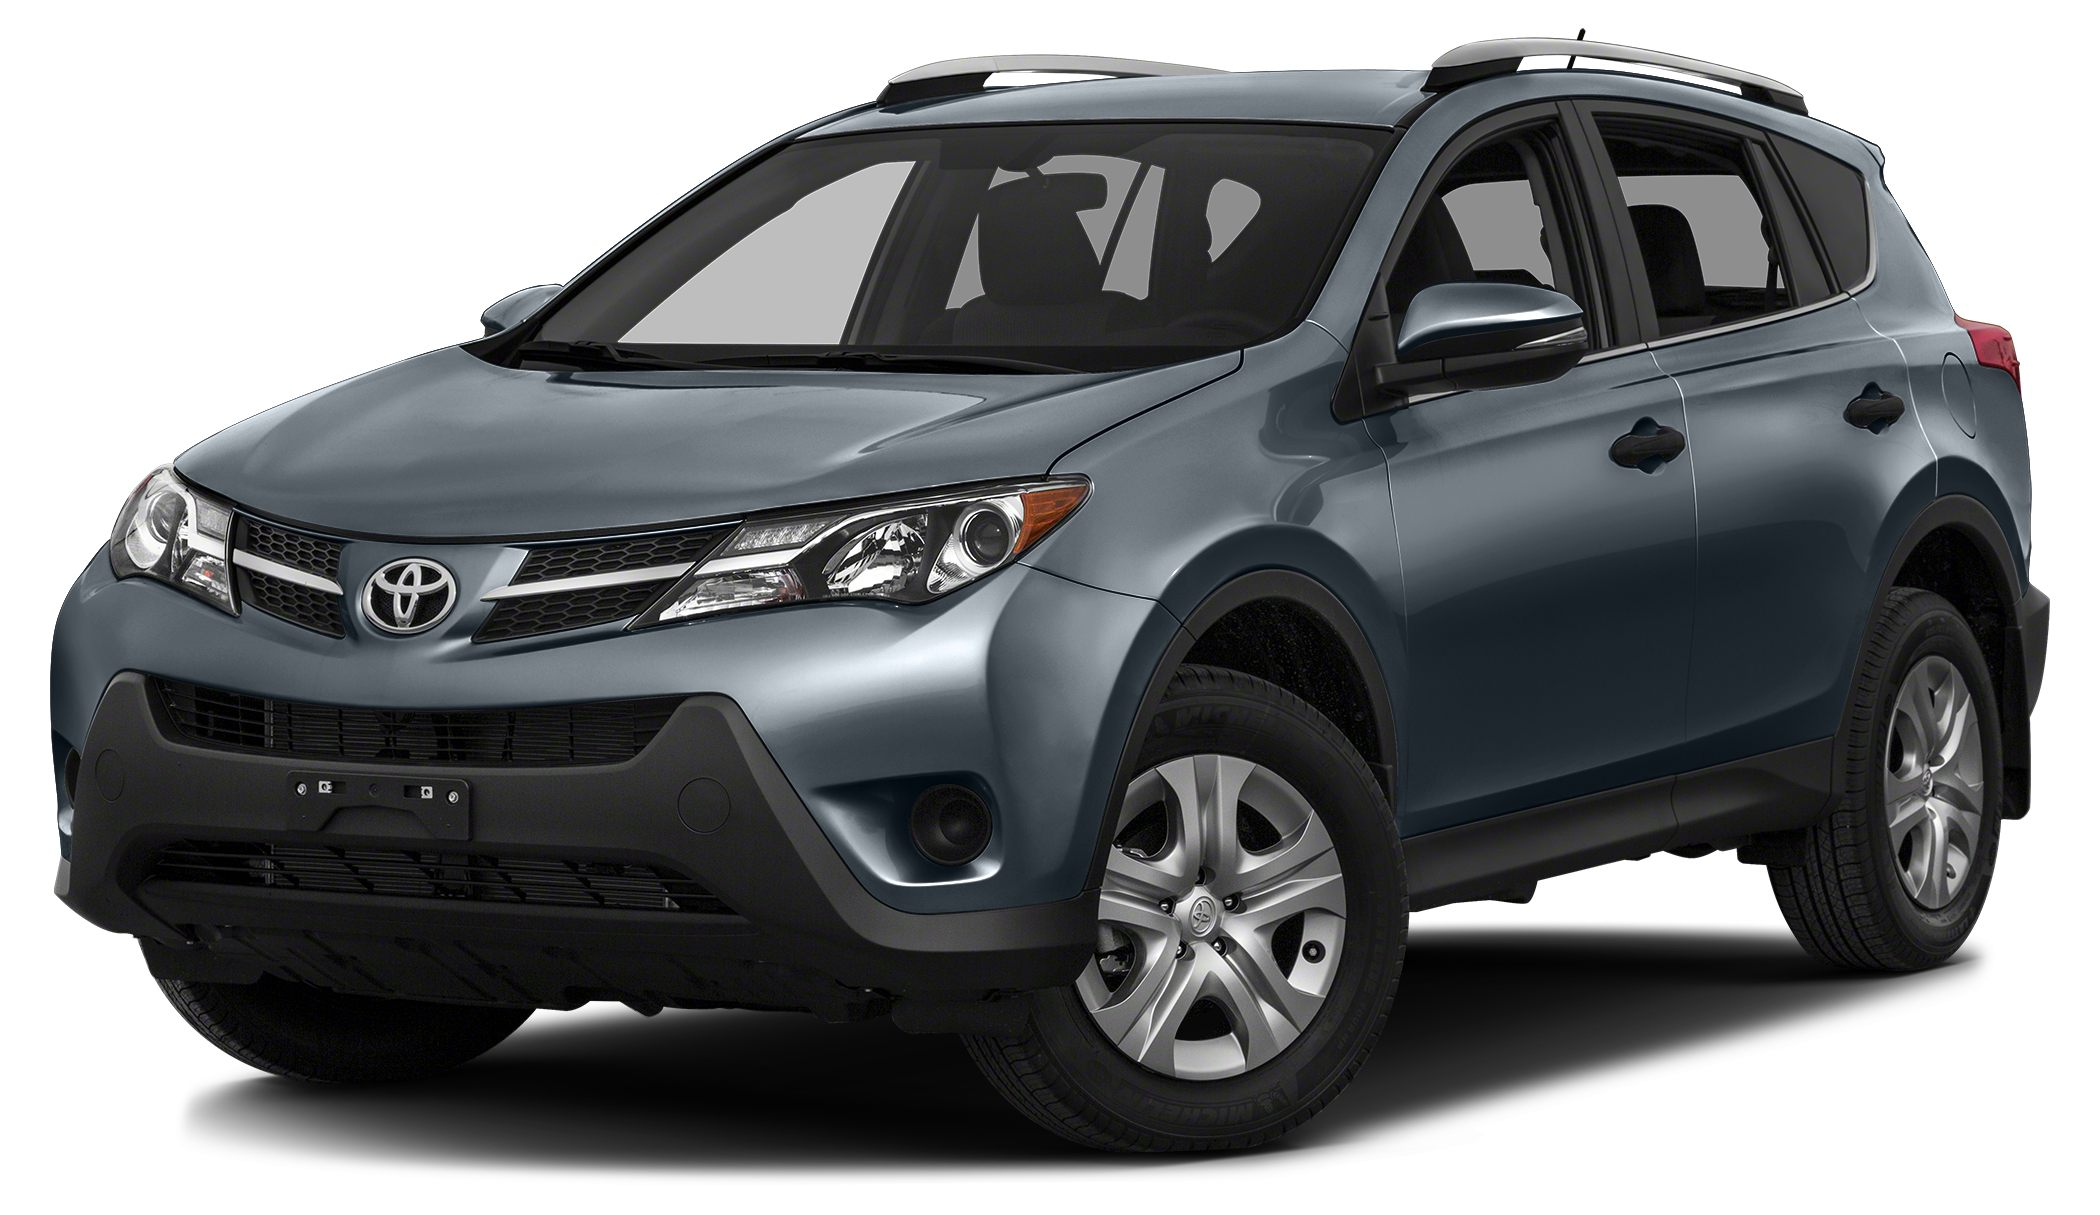 2014 Toyota RAV4 XLE FUEL EFFICIENT 29 MPG Hwy22 MPG City CARFAX 1-Owner ONLY 40986 Miles XLE